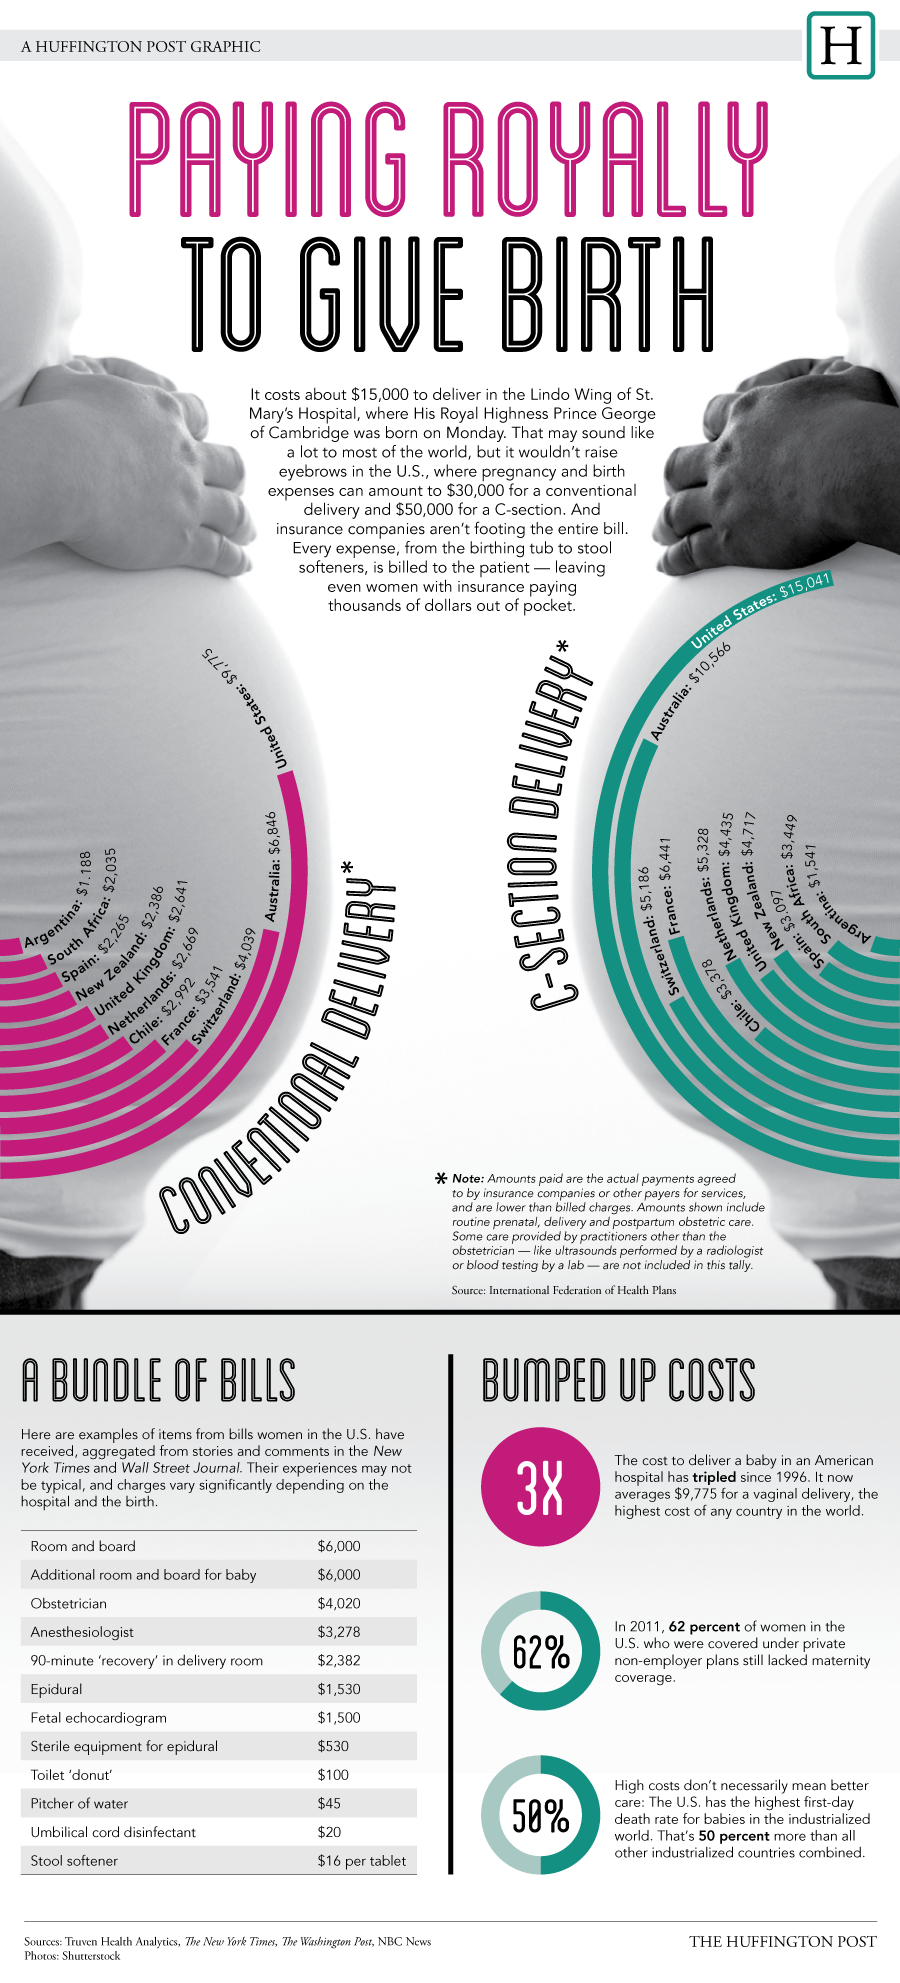 2013_07_ChildBirthCosts_0 copy.png